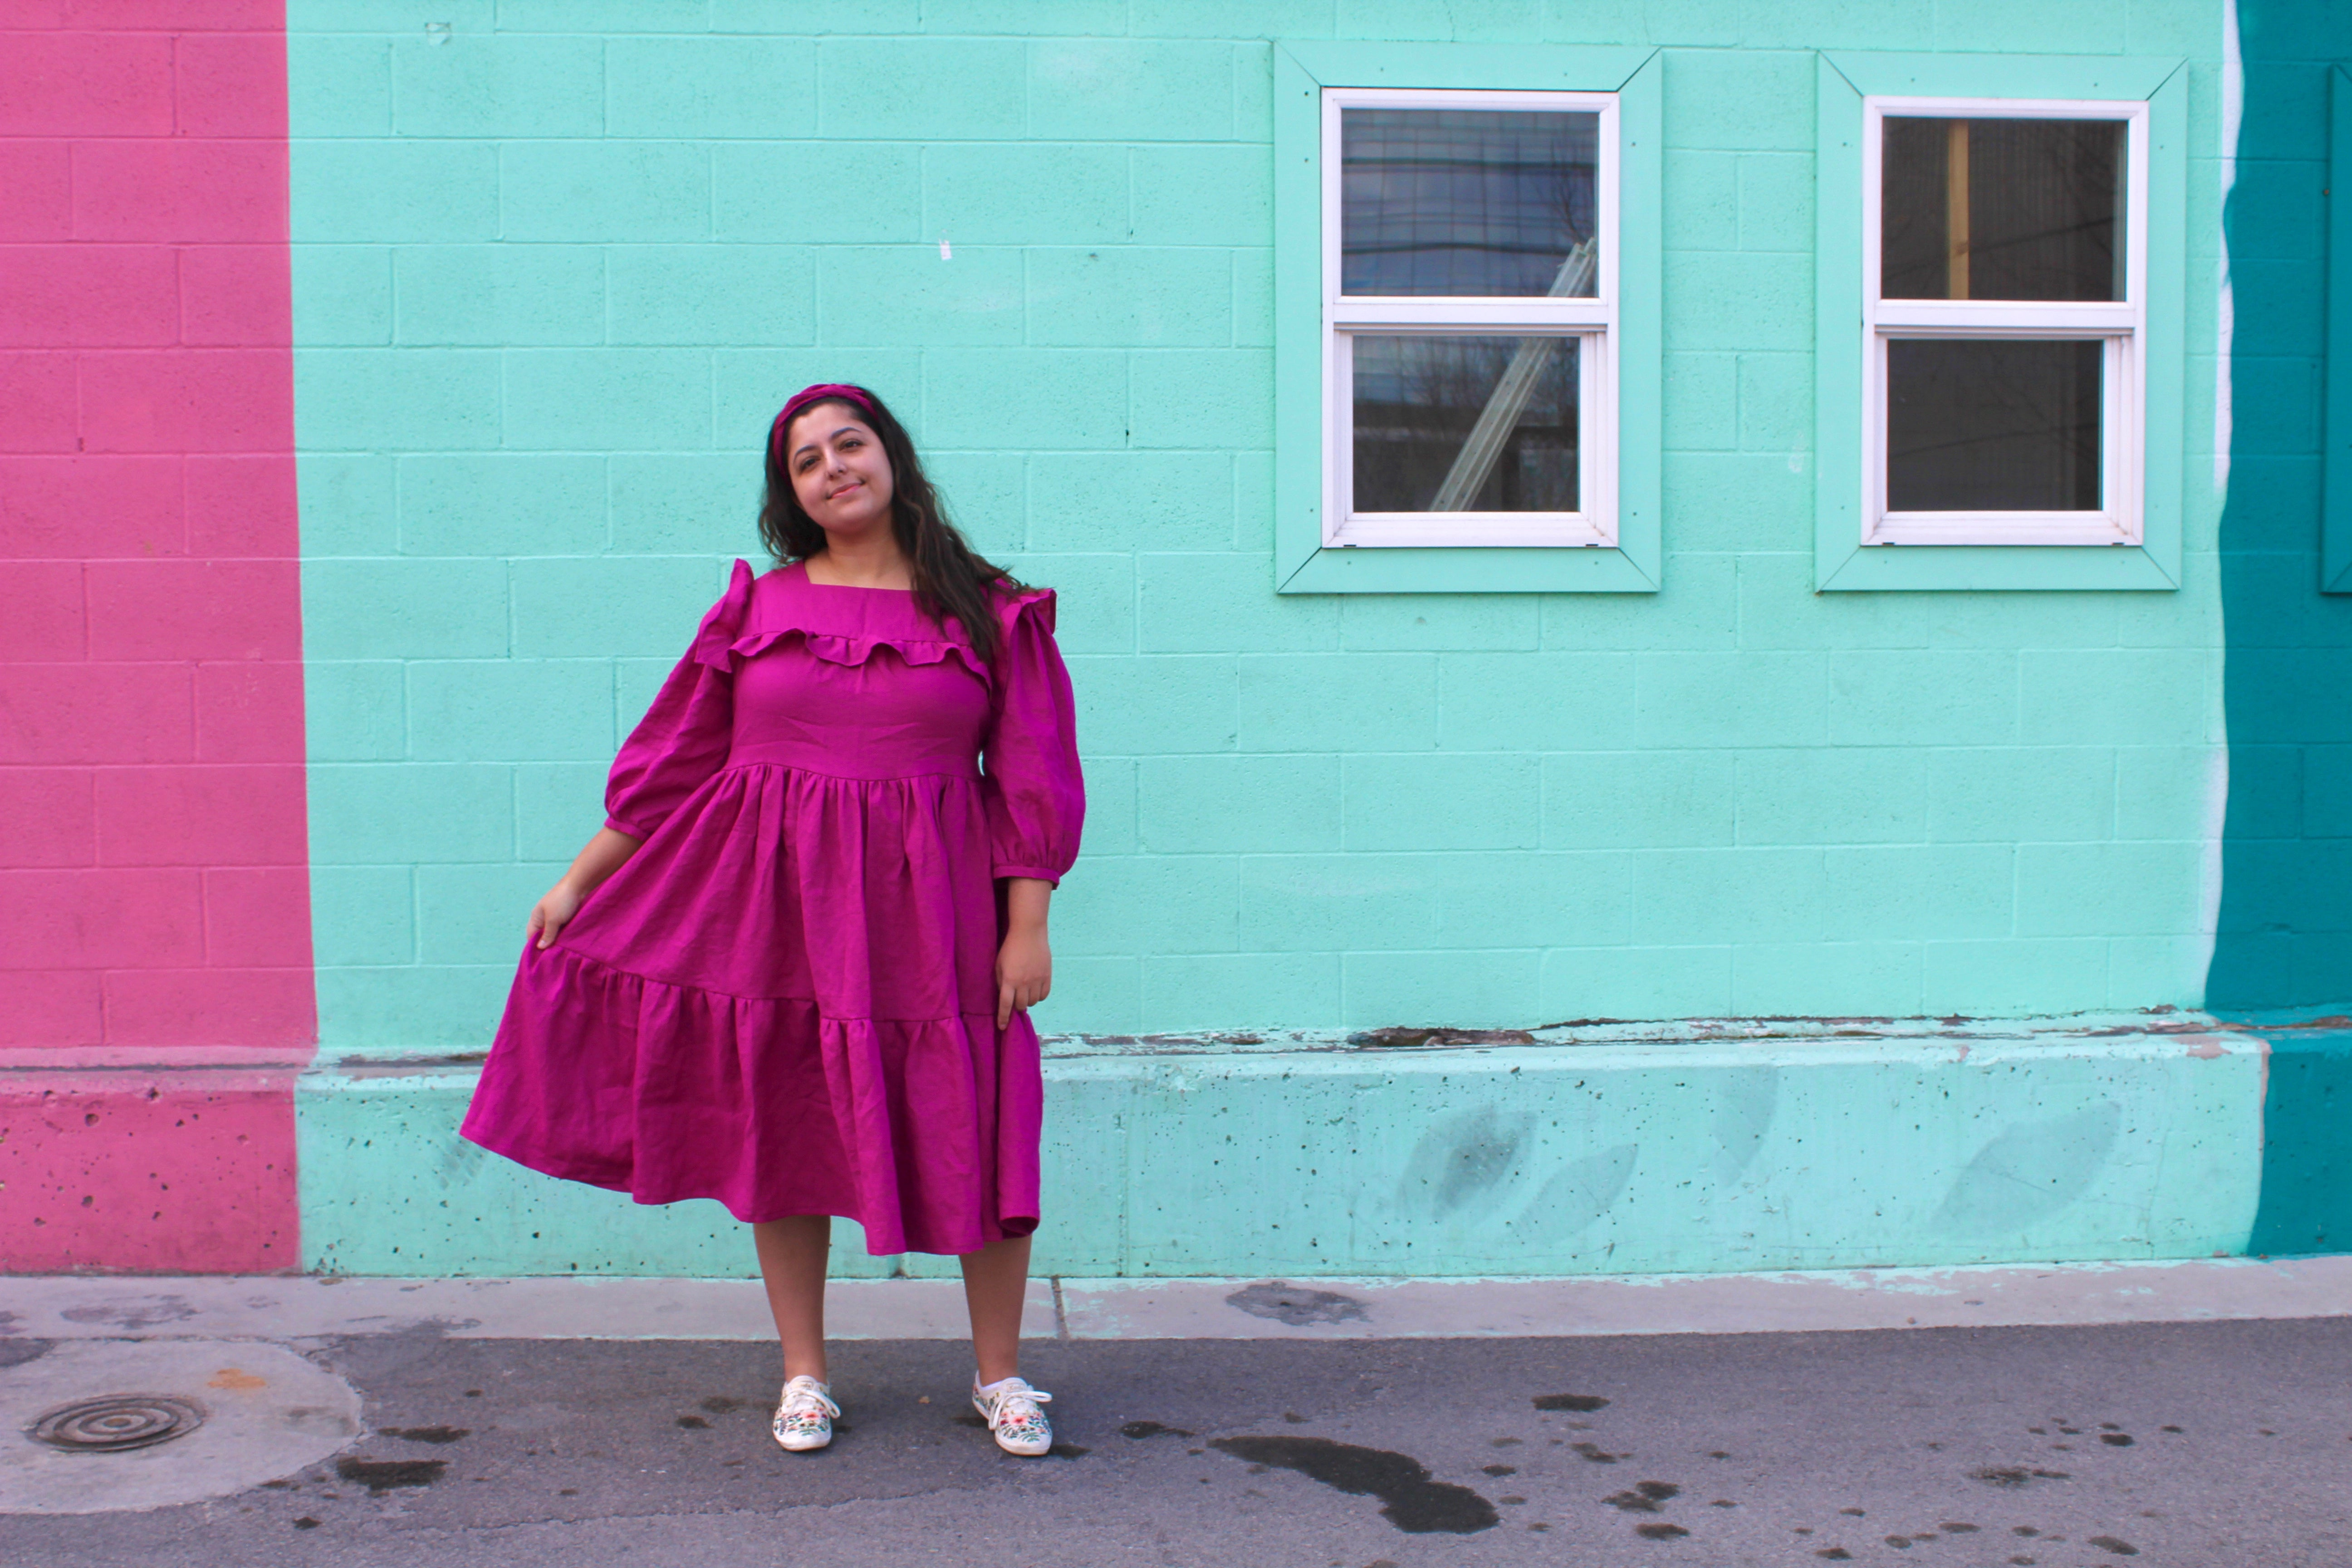 Romy wears a bright pink linen handmade dress, holding one side out slightly from her body to show the vlolume in the tiered skirt.  She is standing in front of a light blue, minty  painted wall.